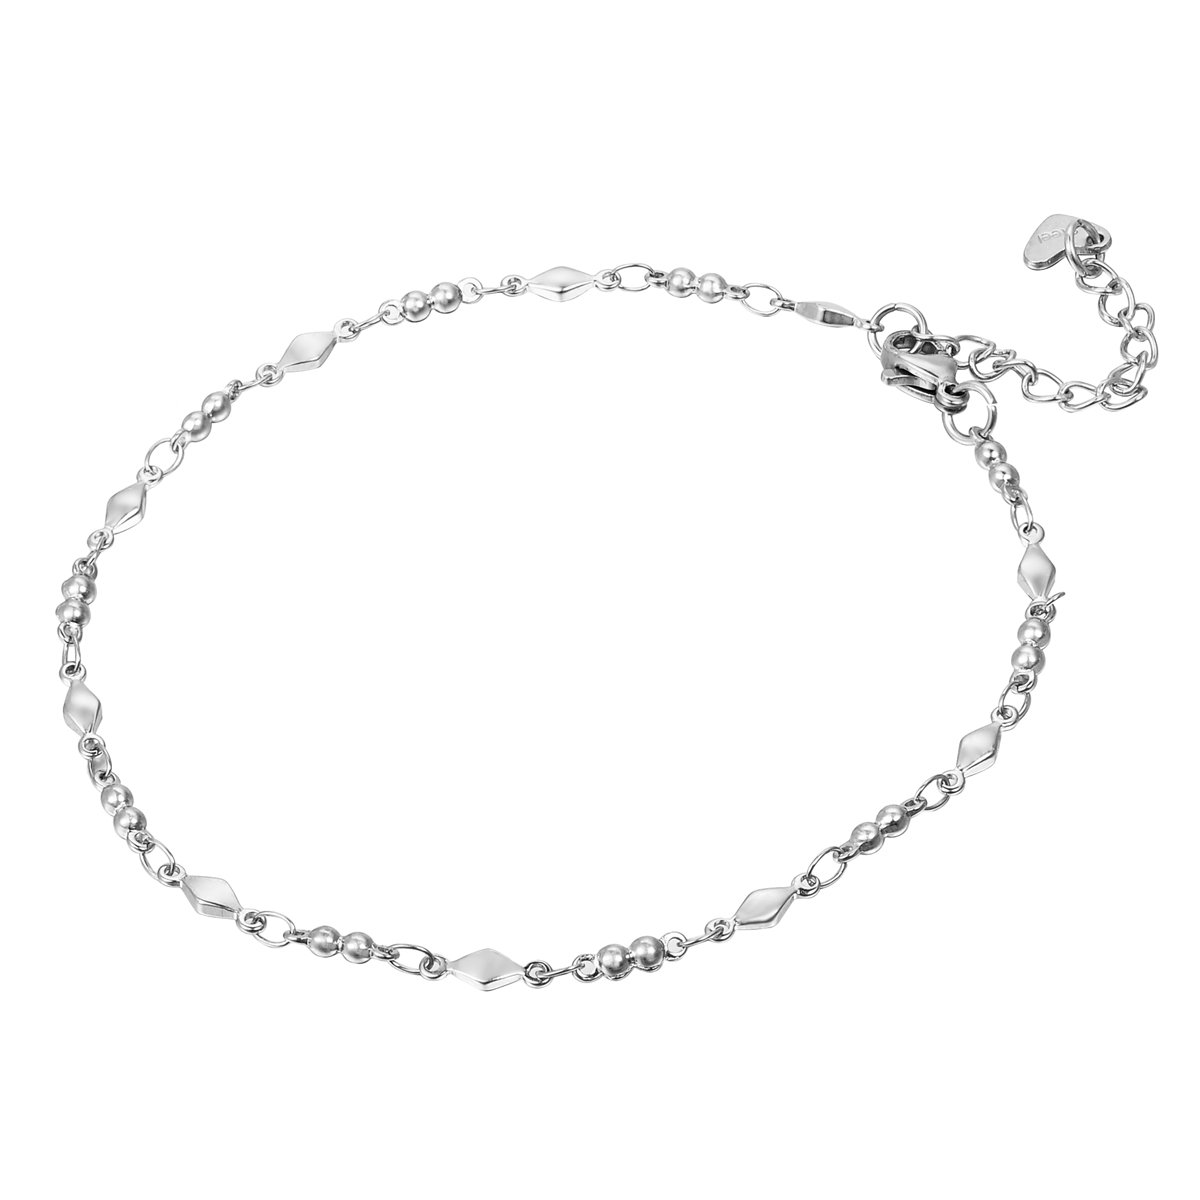 HOUSWEETY Stainless Steel Link Ankle Chain with Lobster Clasp HOUSWEETYB106657